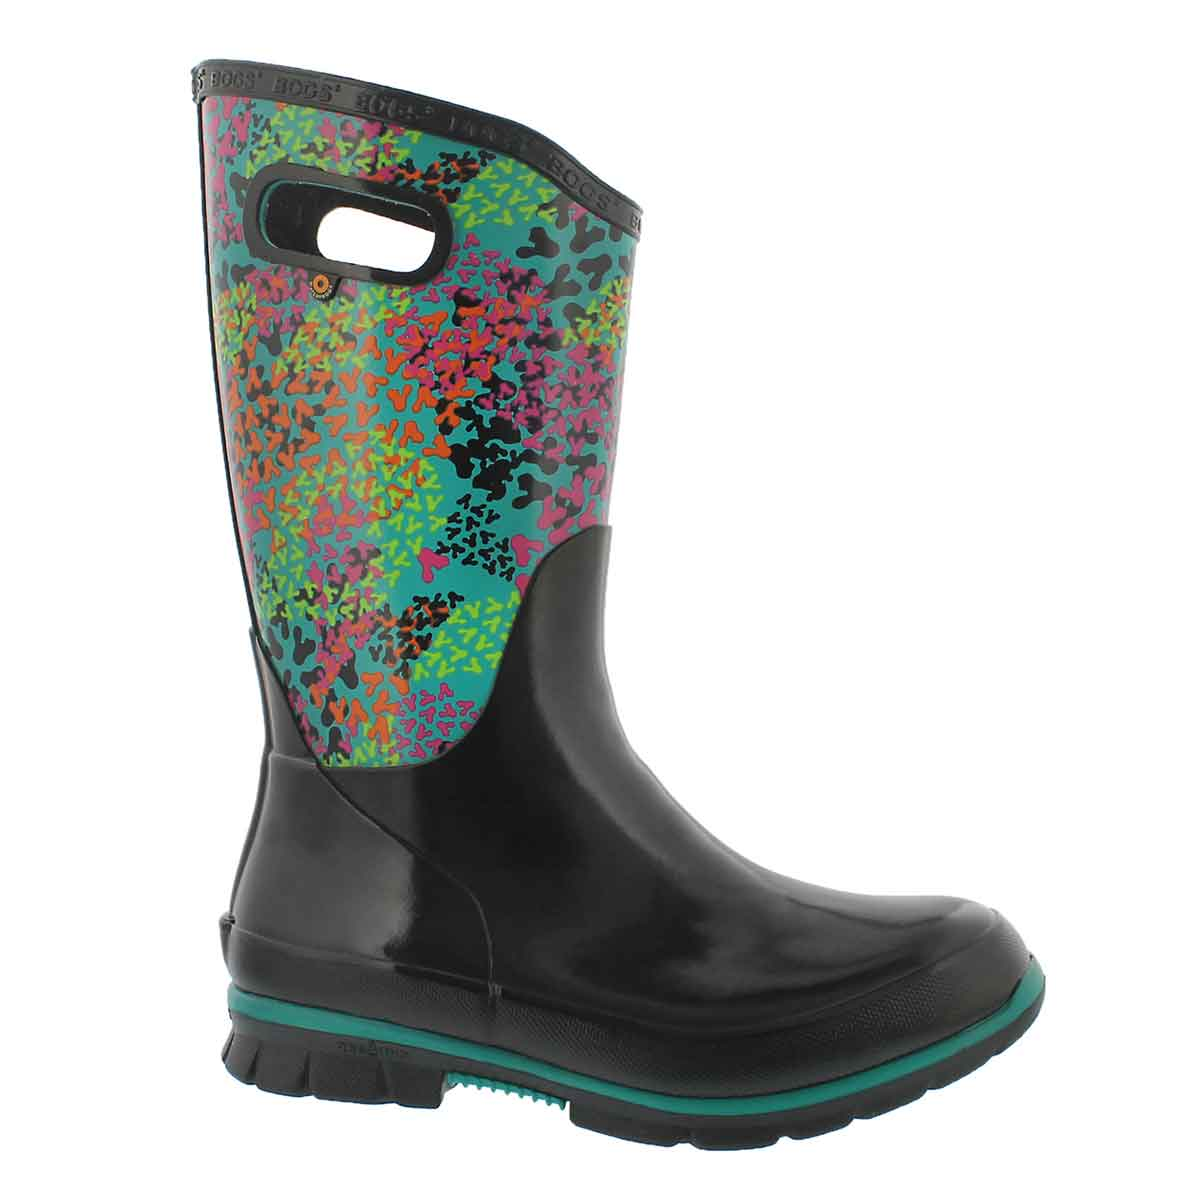 Women's BERKLEY FP blk multi waterproof rain boots